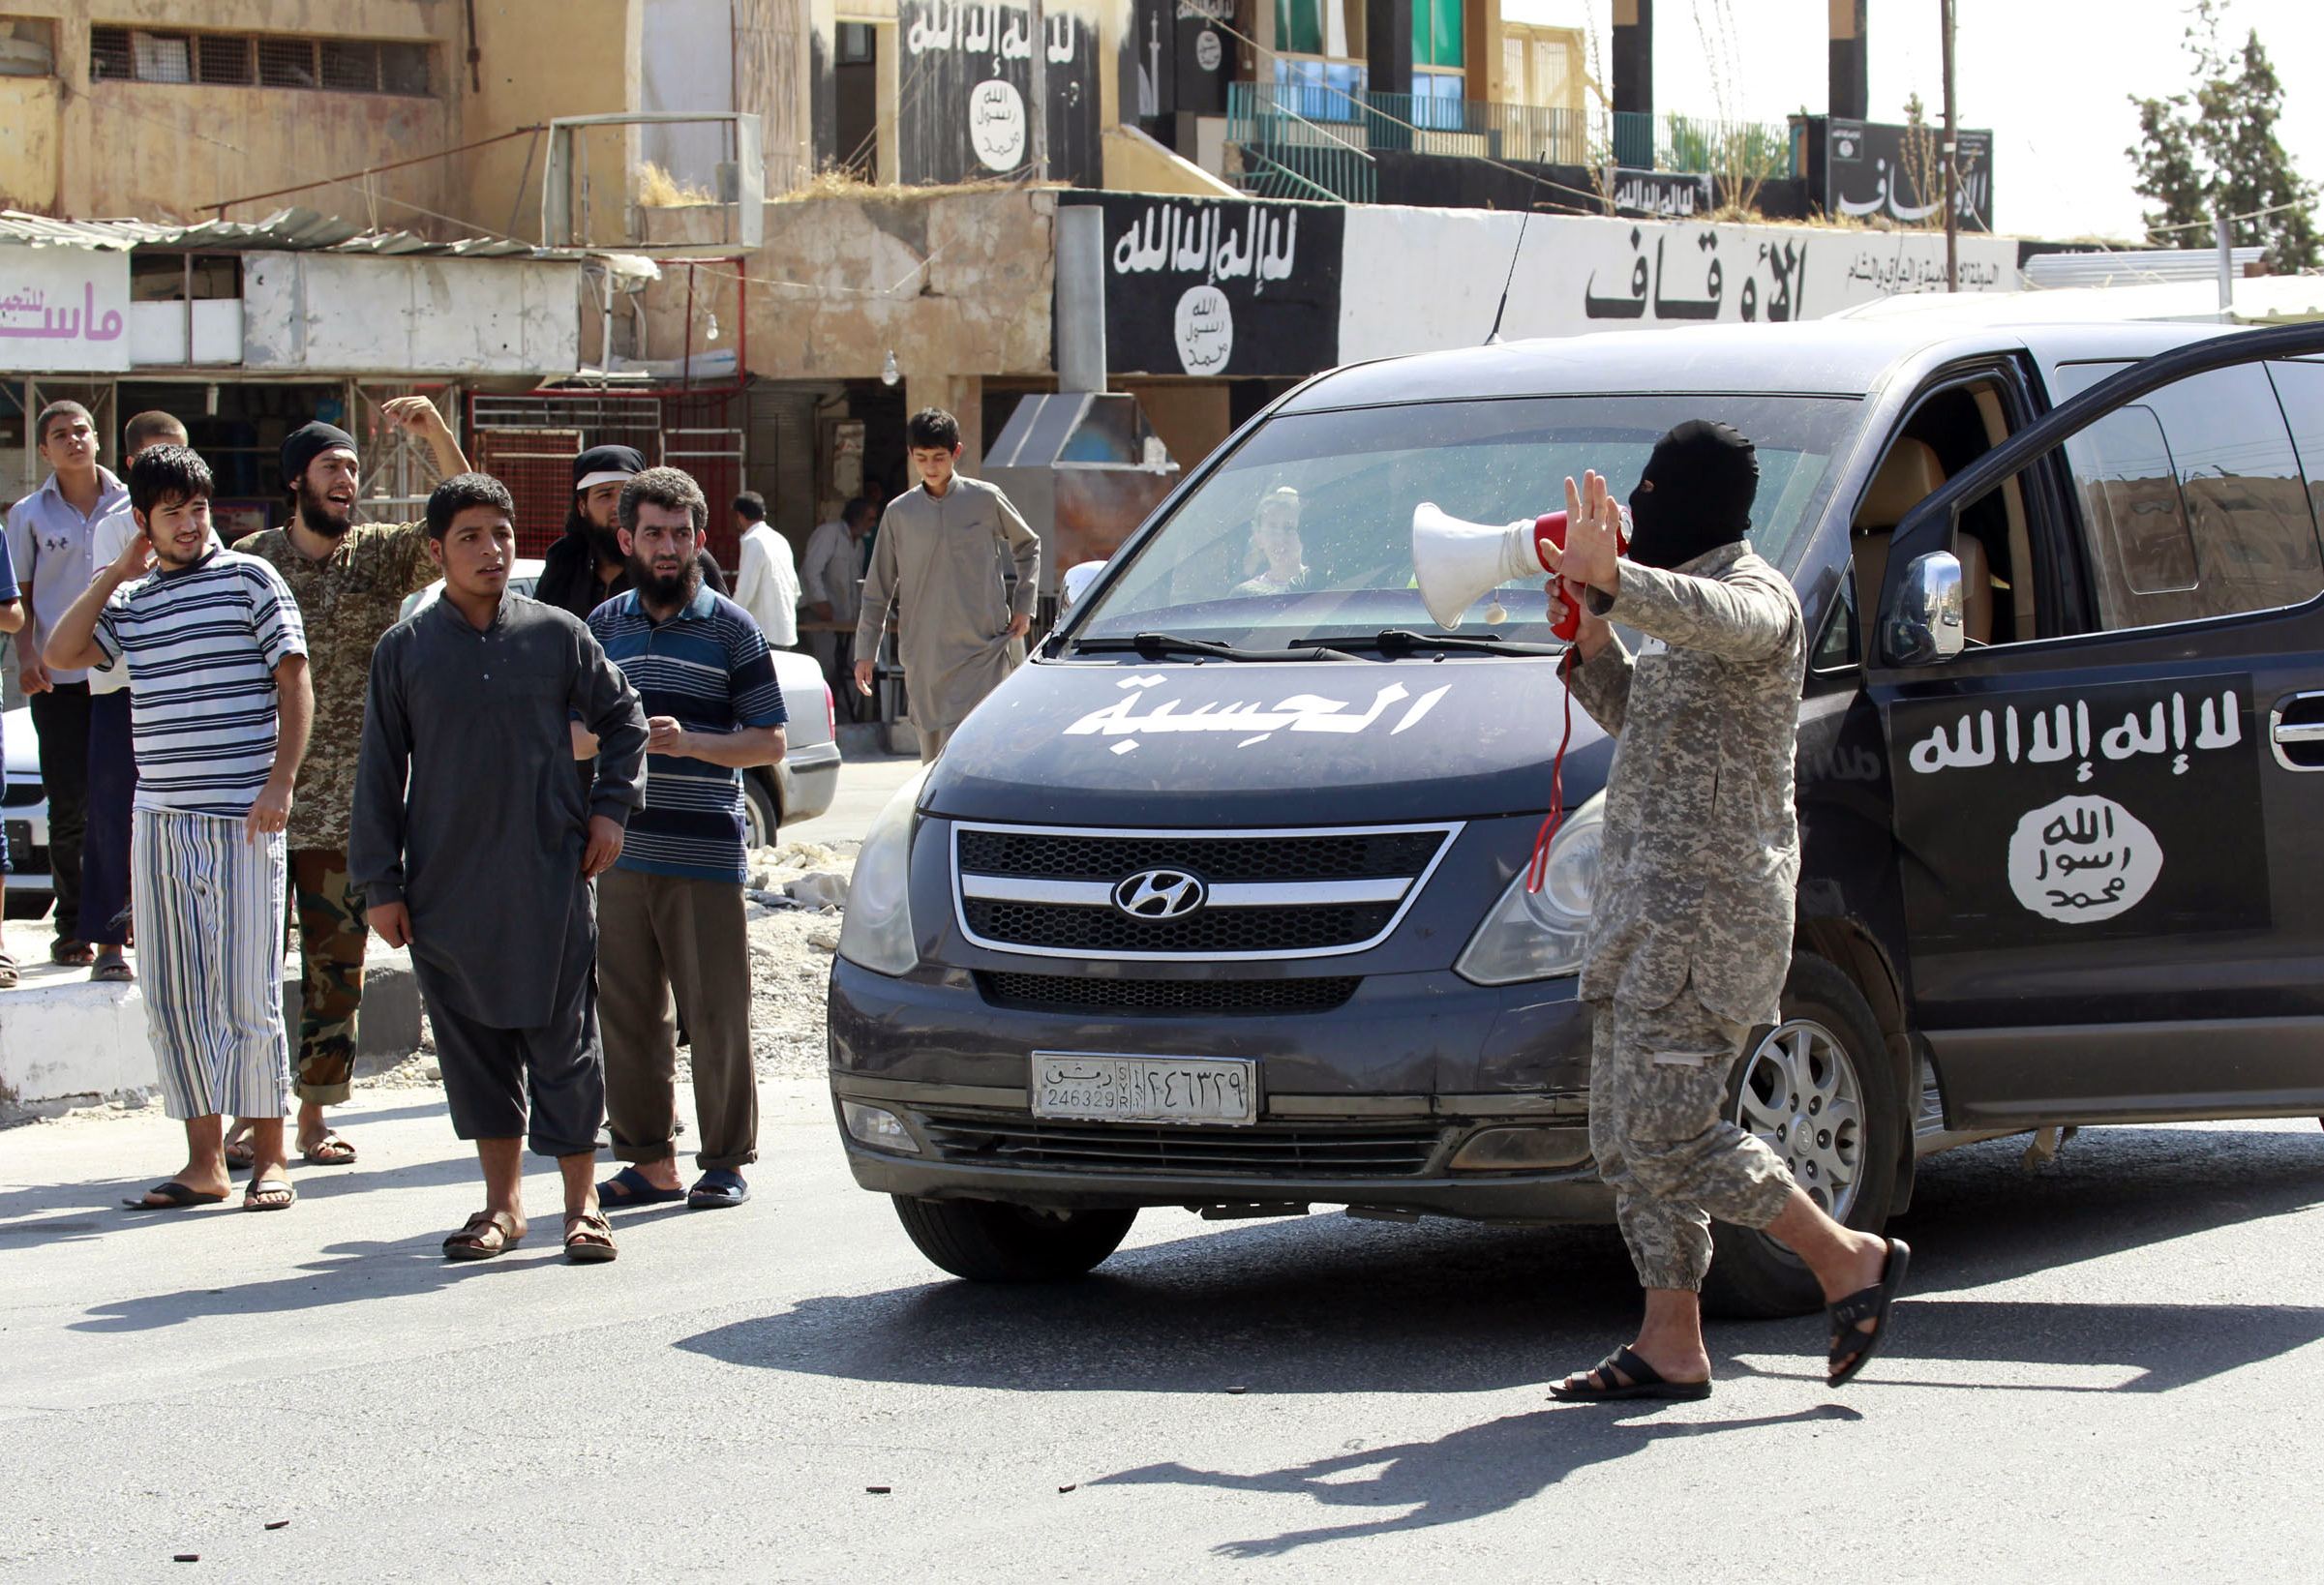 Islamic State Executes Soldiers, Takes Hostages at Syria Base: Social Media